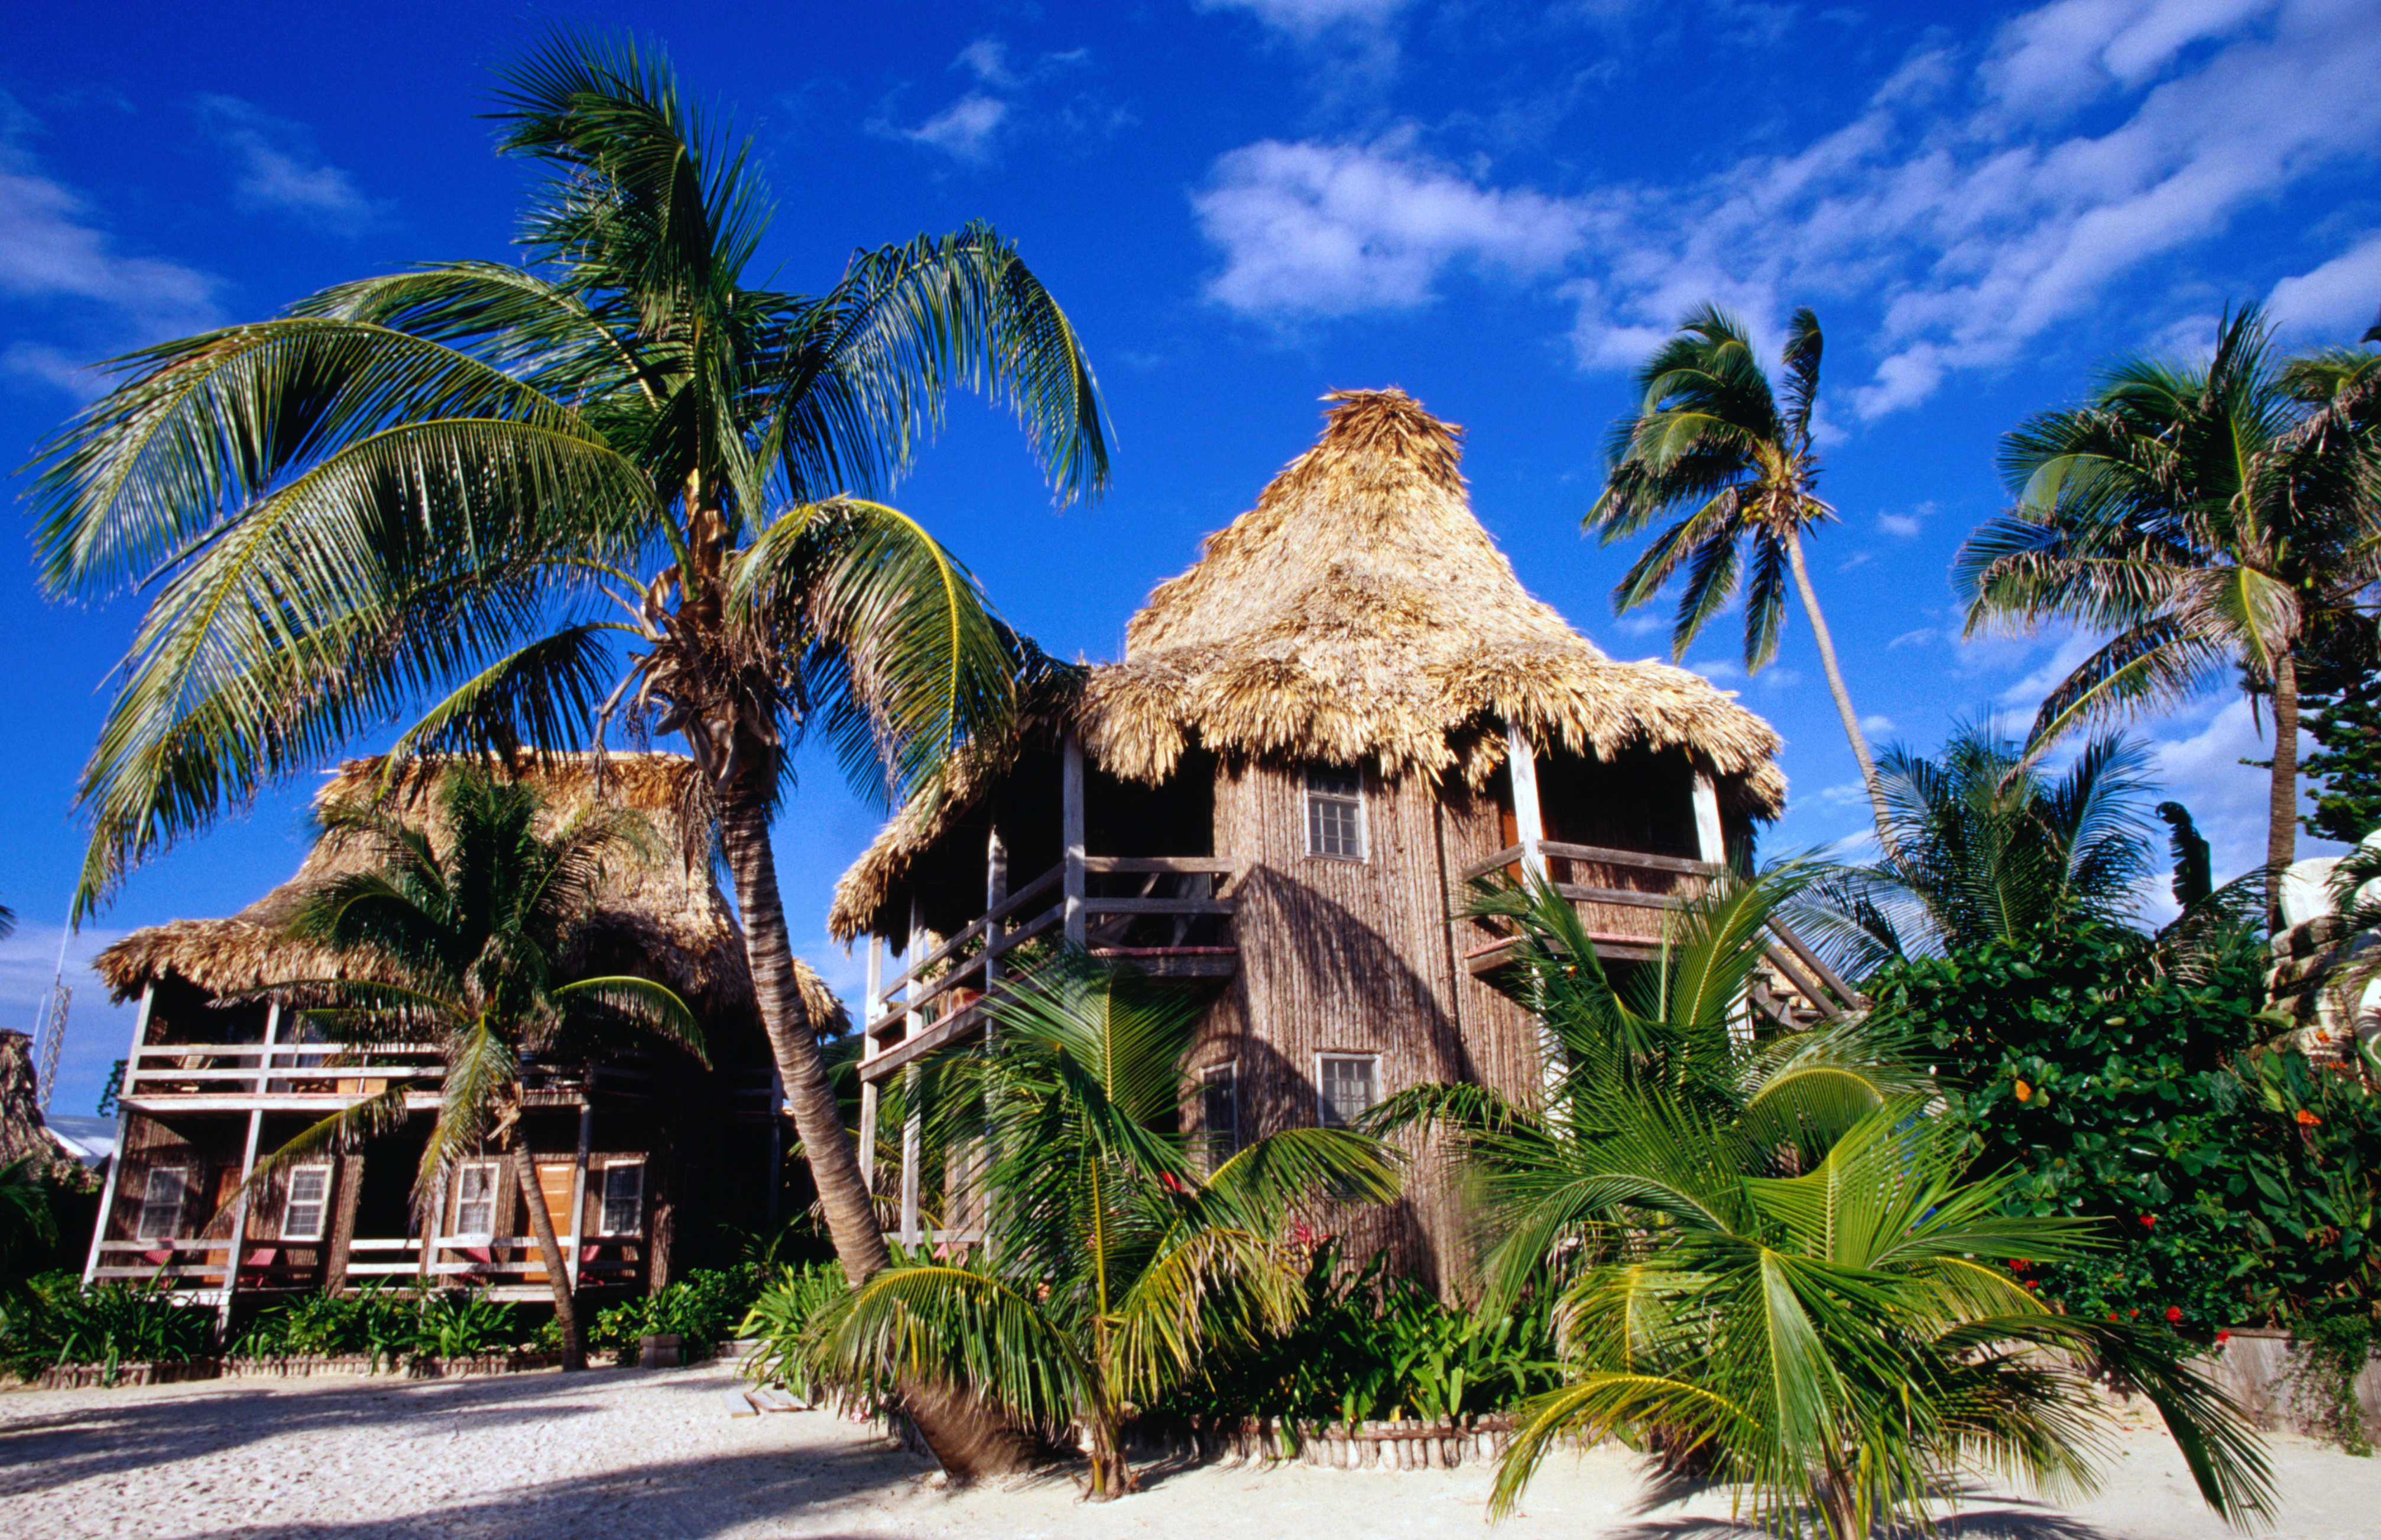 Resort buildings and palm trees, Ambergris Cave.